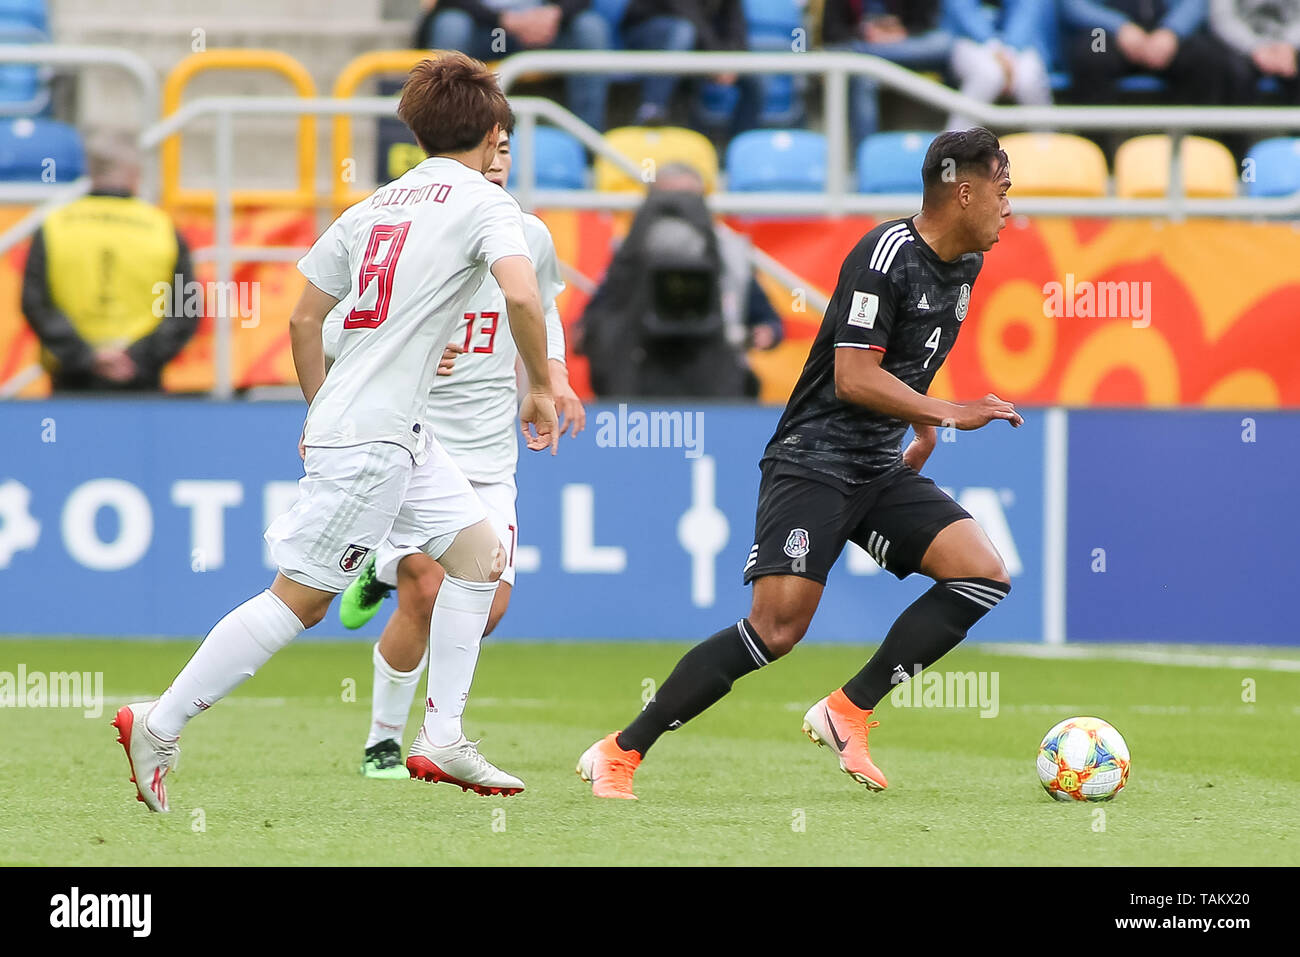 Gdynia Stadium, Gdynia, Poland - 26th May, 2019: Efrain Orona (R) from Mexico and Koki Saito (L) from Japan seen in action during FIFA U-20 World Cup match between Mexico and Japan (GROUP B) in Gdynia. (Final score; Mexico 0:3 Japan) - Stock Image